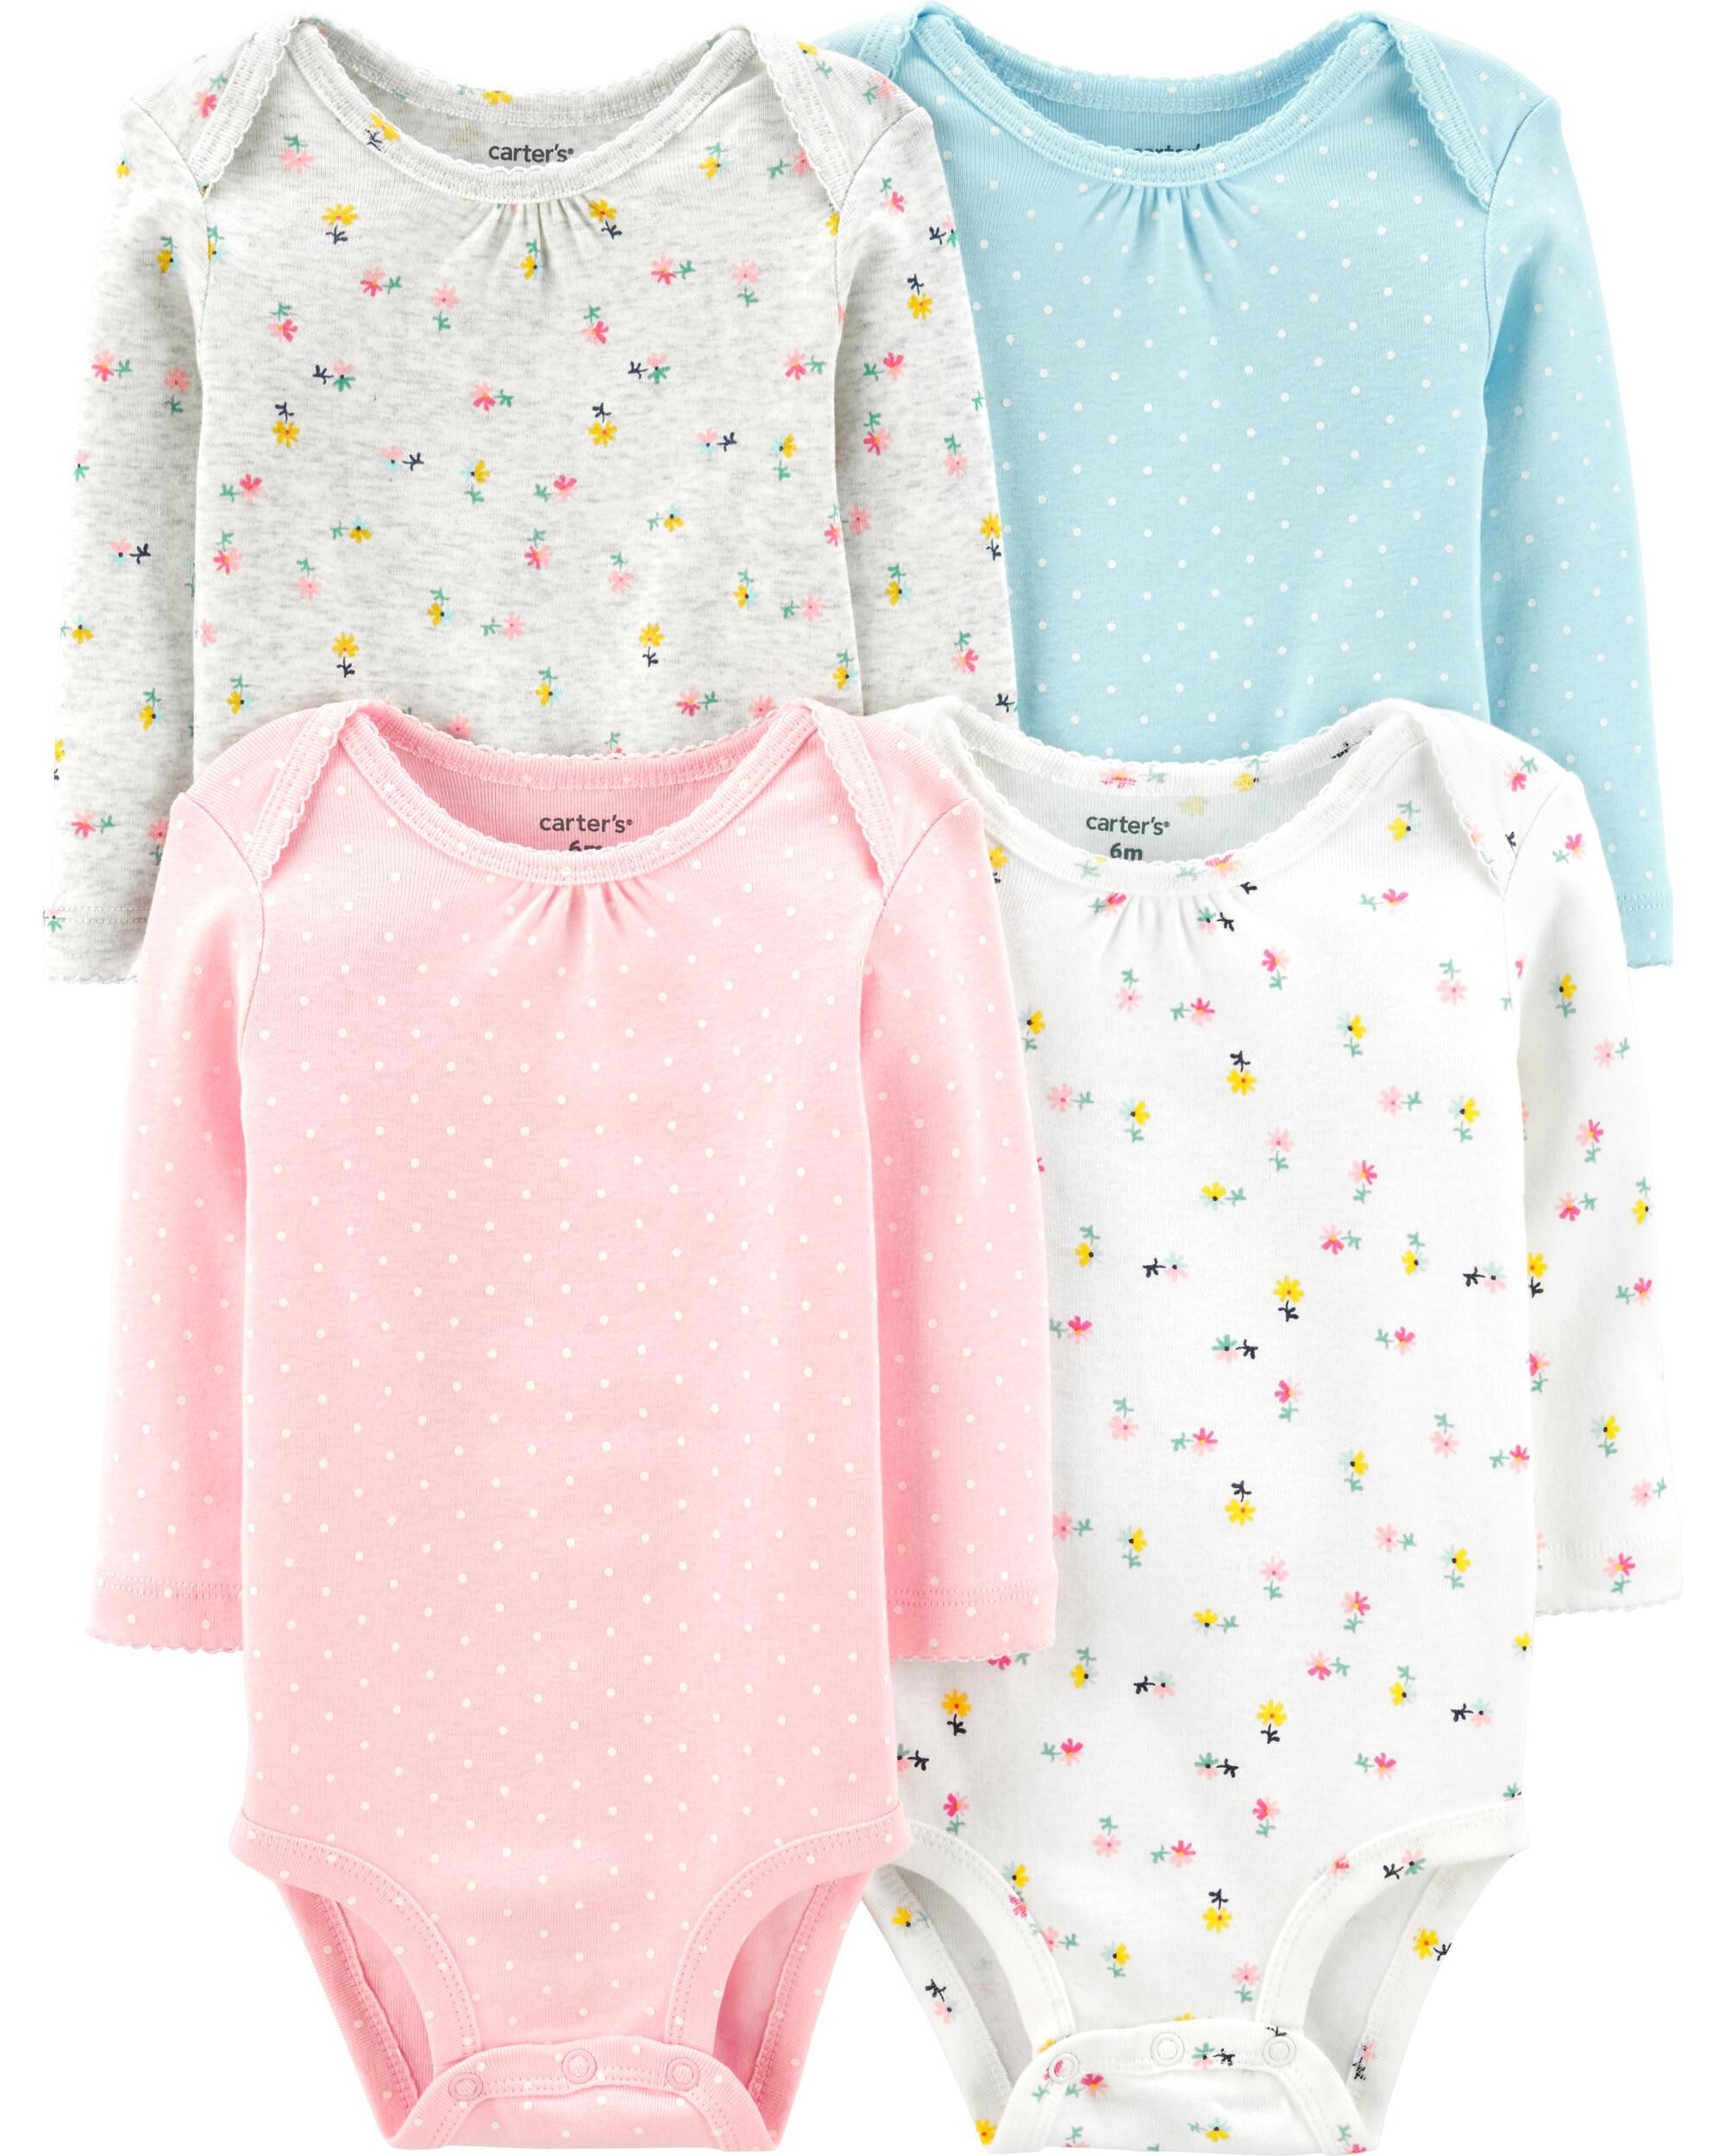 New Carter/'s 3 Pack Floral Pink Ruffle Sleeve Bodysuits Tops 9m 12m 18m Girls